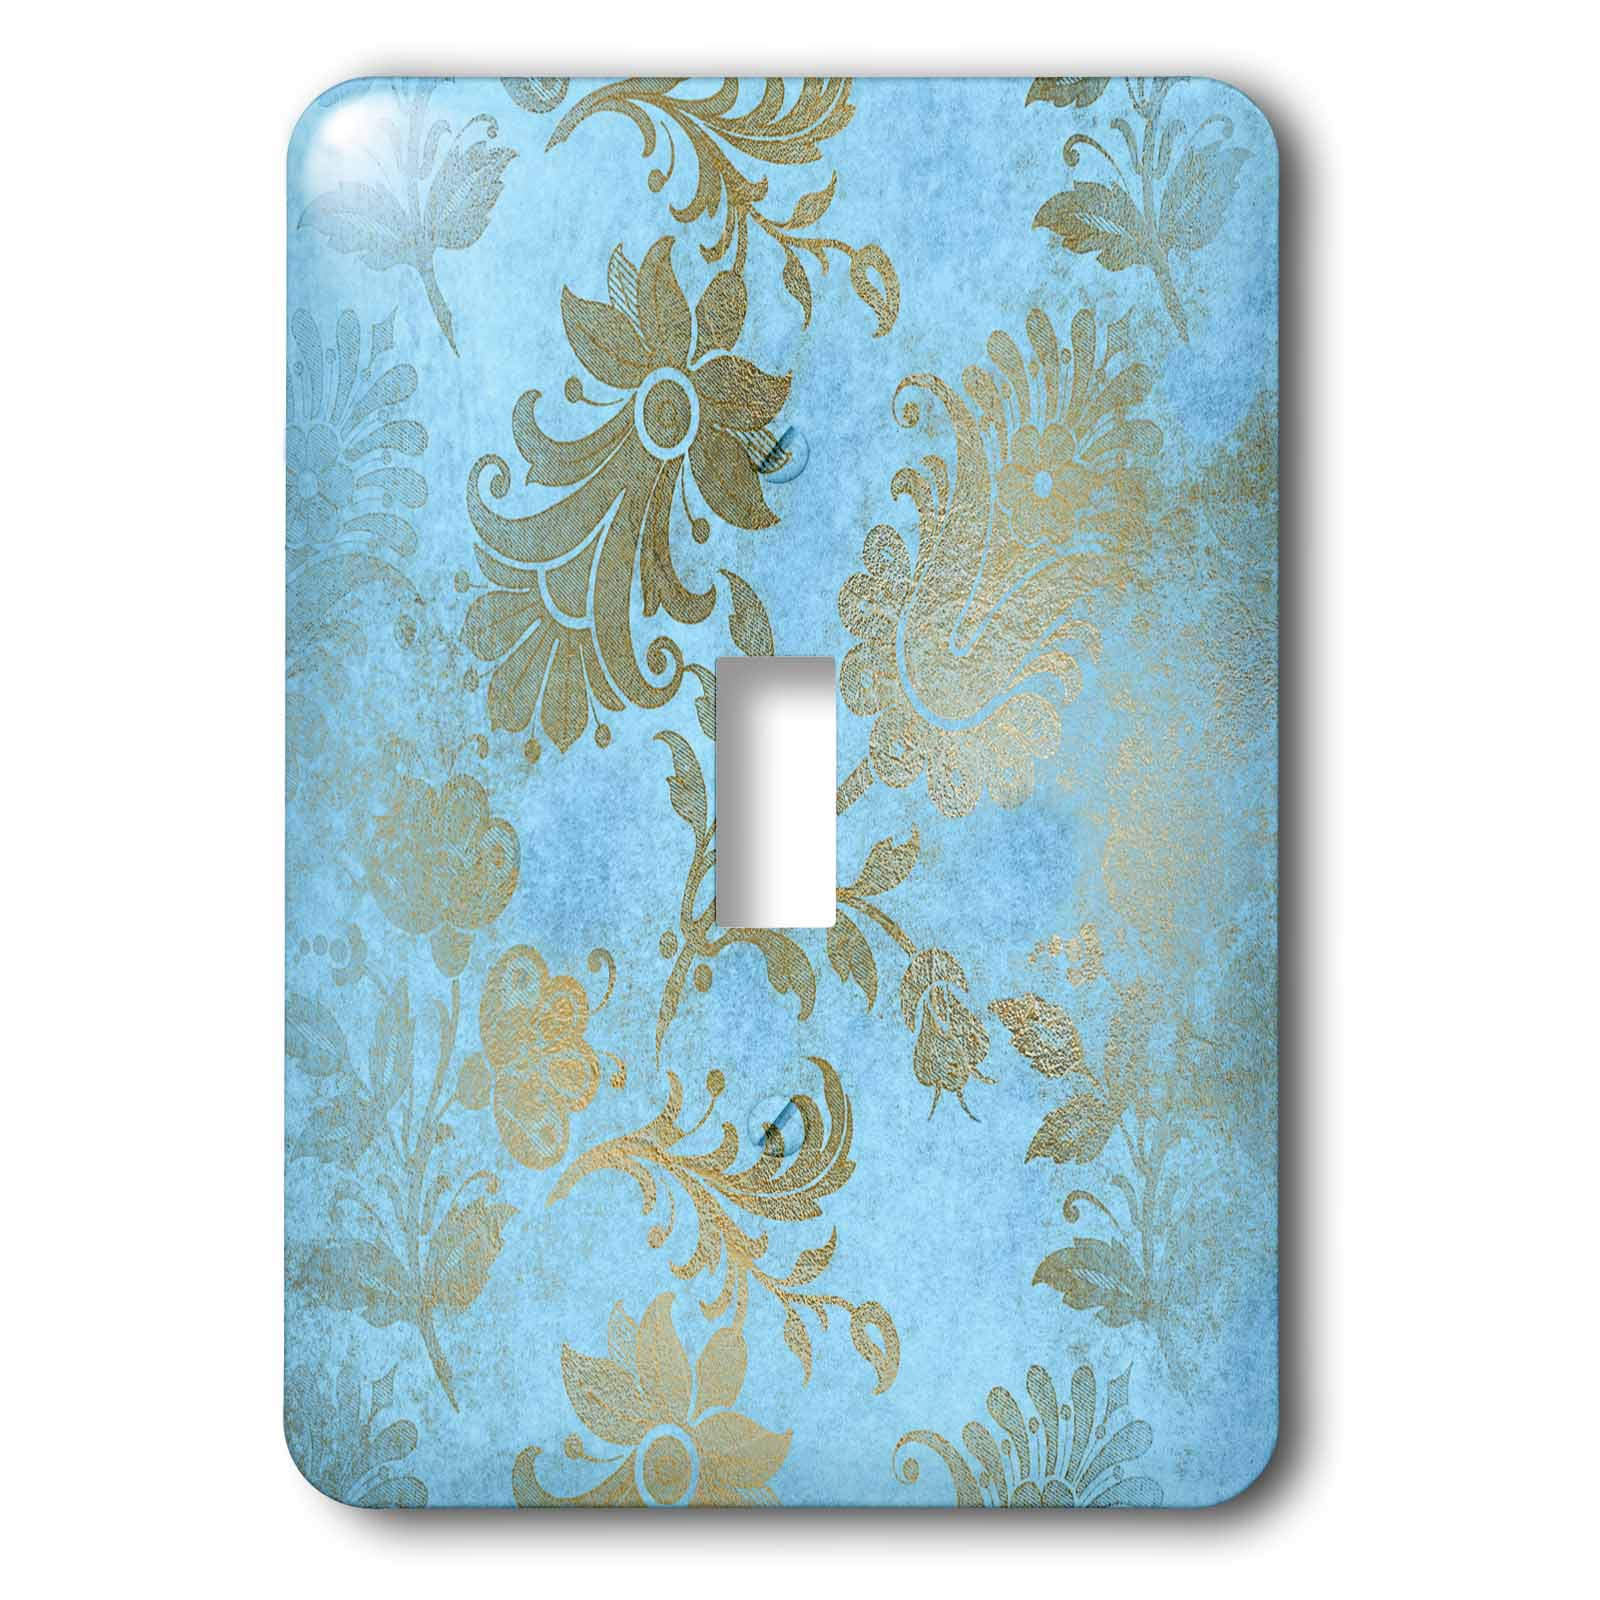 3dRose Uta Naumann Faux Glitter Pattern - Image of Sky Blue and Gold Metal Foil Vintage Grunge Luxury Floral Pattern - Light Switch Covers - single toggle switch (lsp_290170_1)